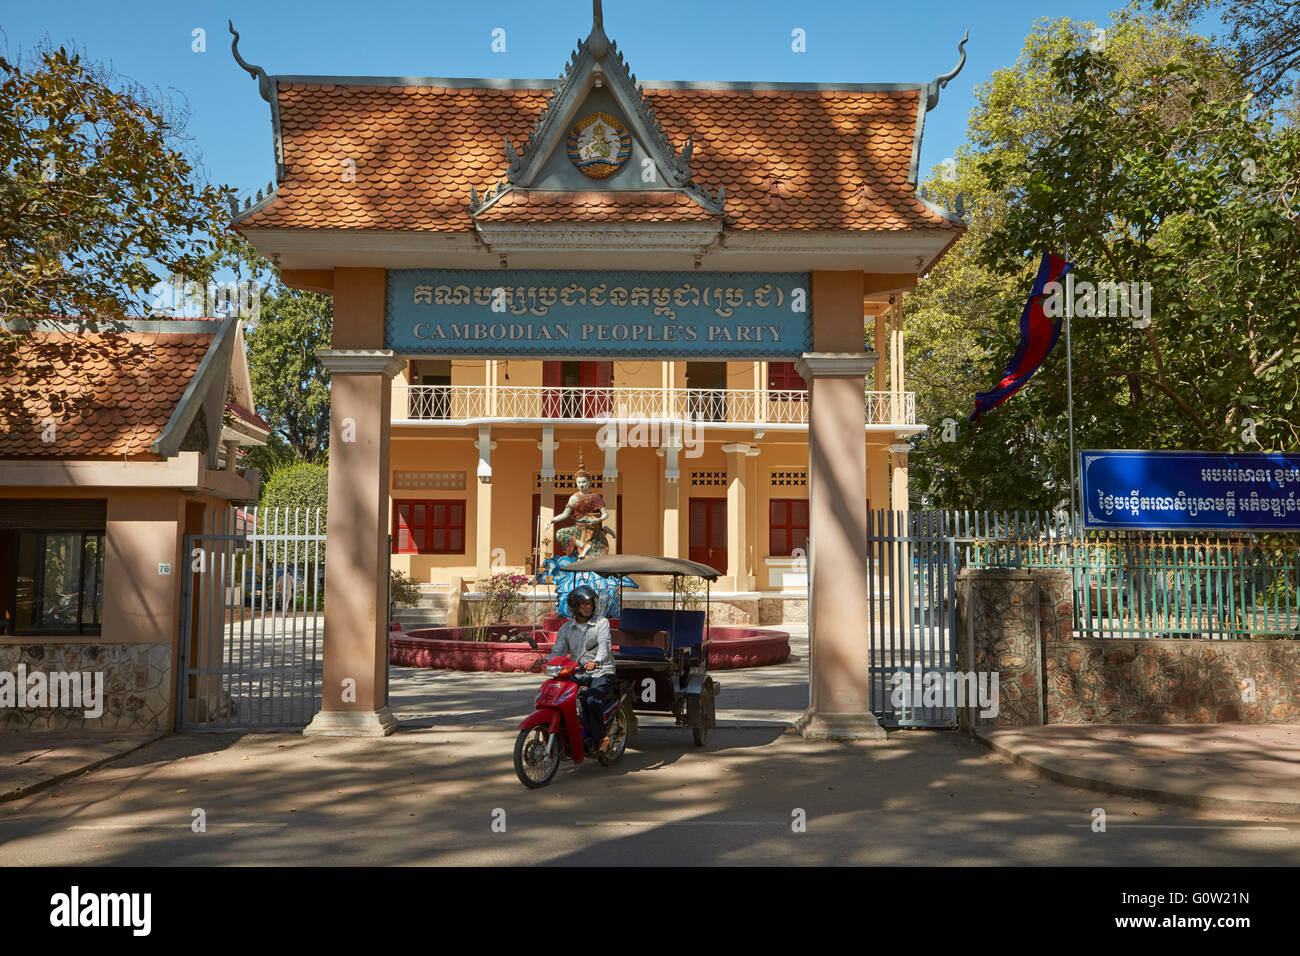 Cambodia People's Party Offices and tuk-tuk, Siem Reap, Cambodia - Stock Image